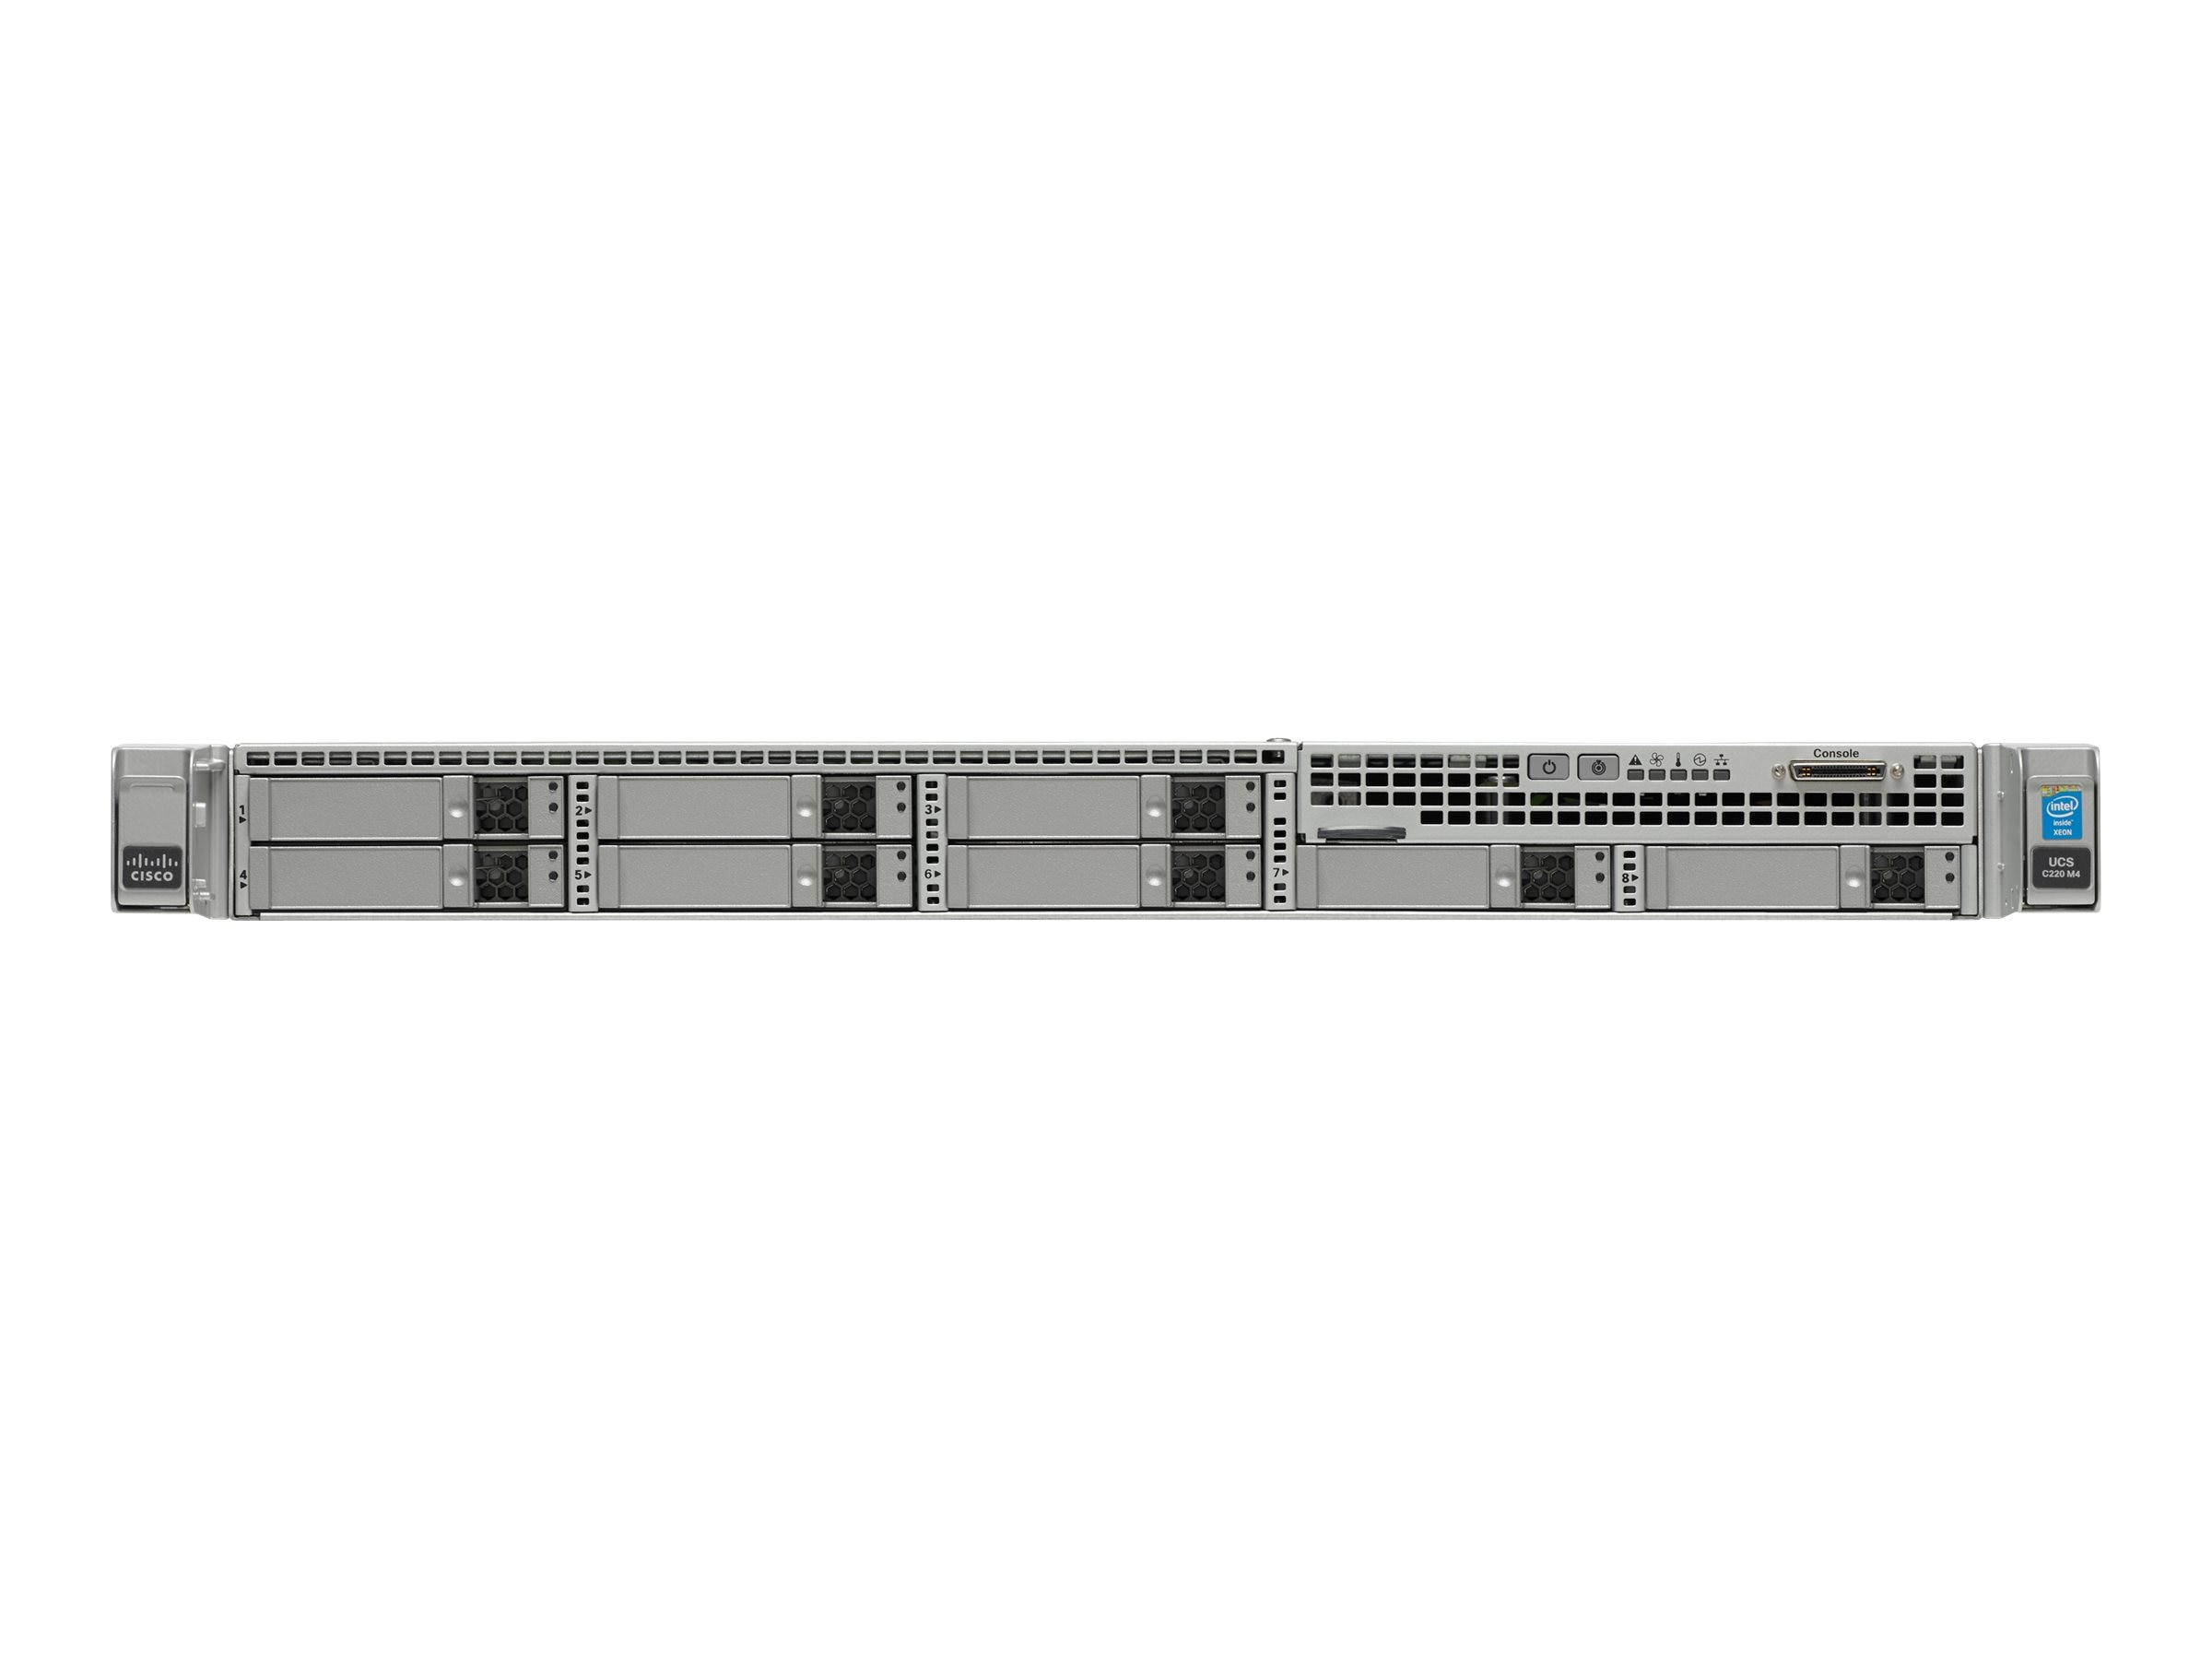 Cisco UCS Smart Play Select C220 M4S Advanced (2x)E5-2670 v3 2.3GHz 128GB 8x2.5Bays VIC1227 2x10Gb 2x770W, UCS-SPL-C220M4-A2, 22073999, Servers